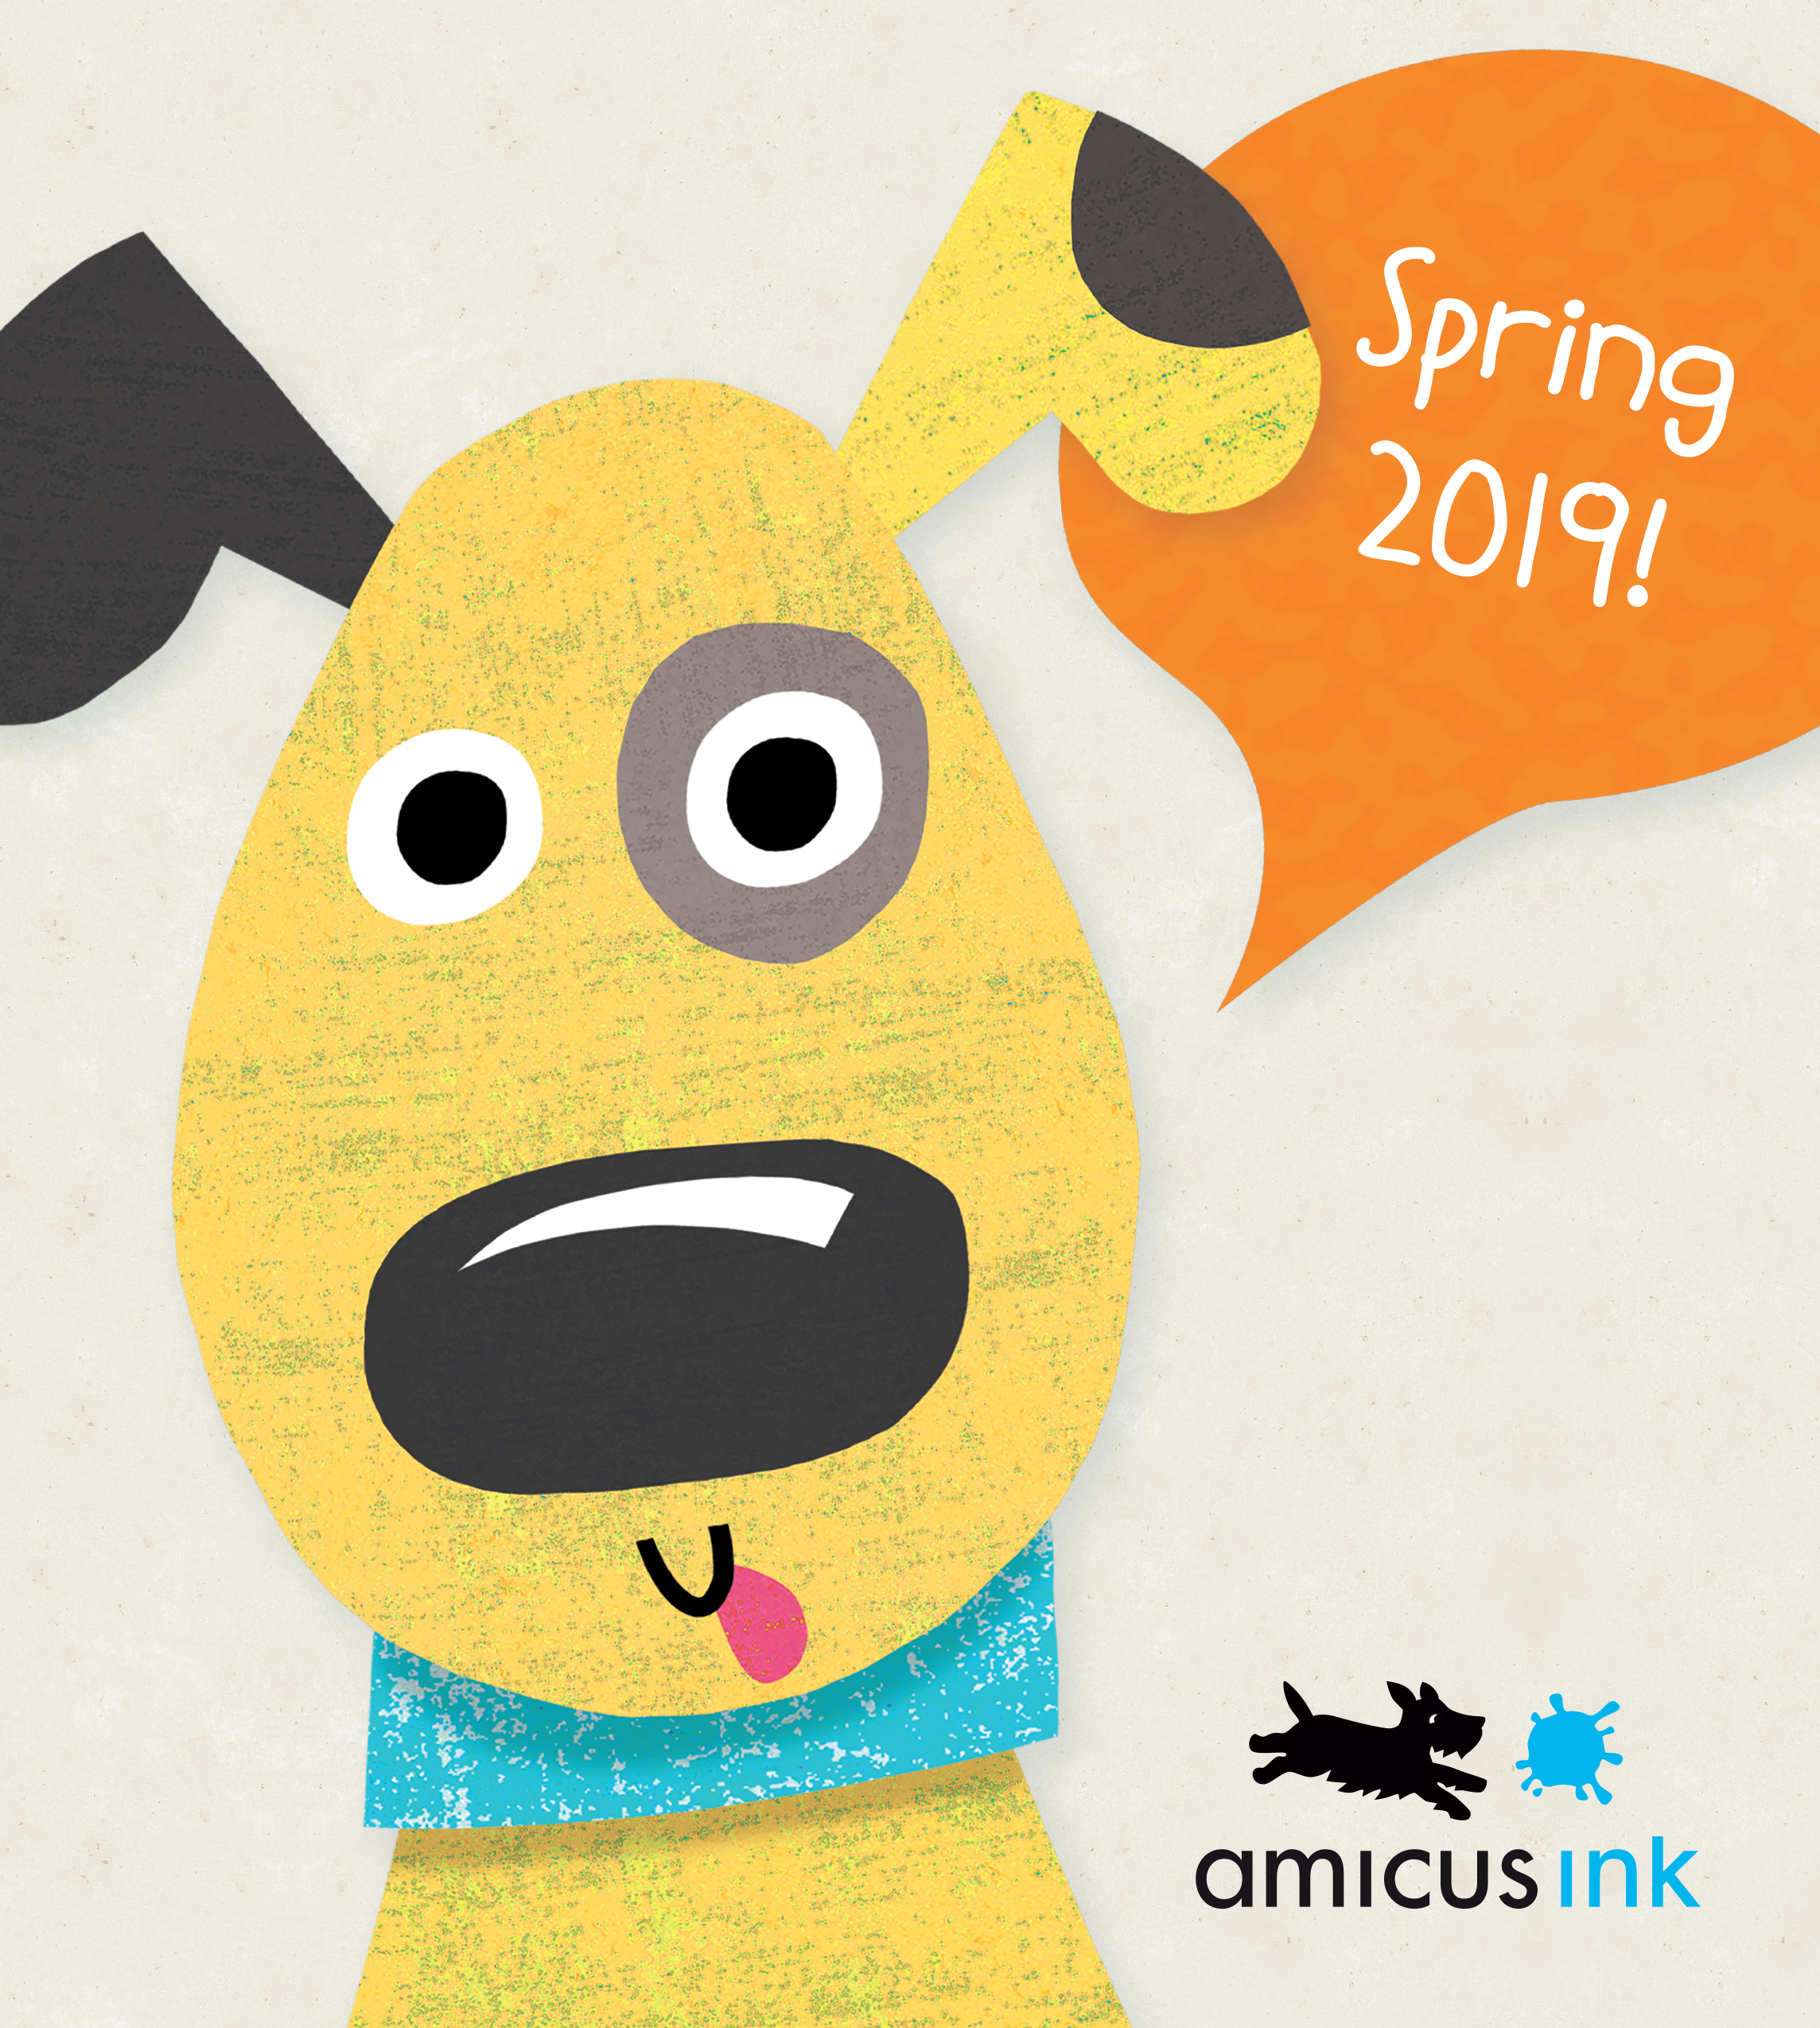 Spring 2018 Amicus Ink Retail Catalog